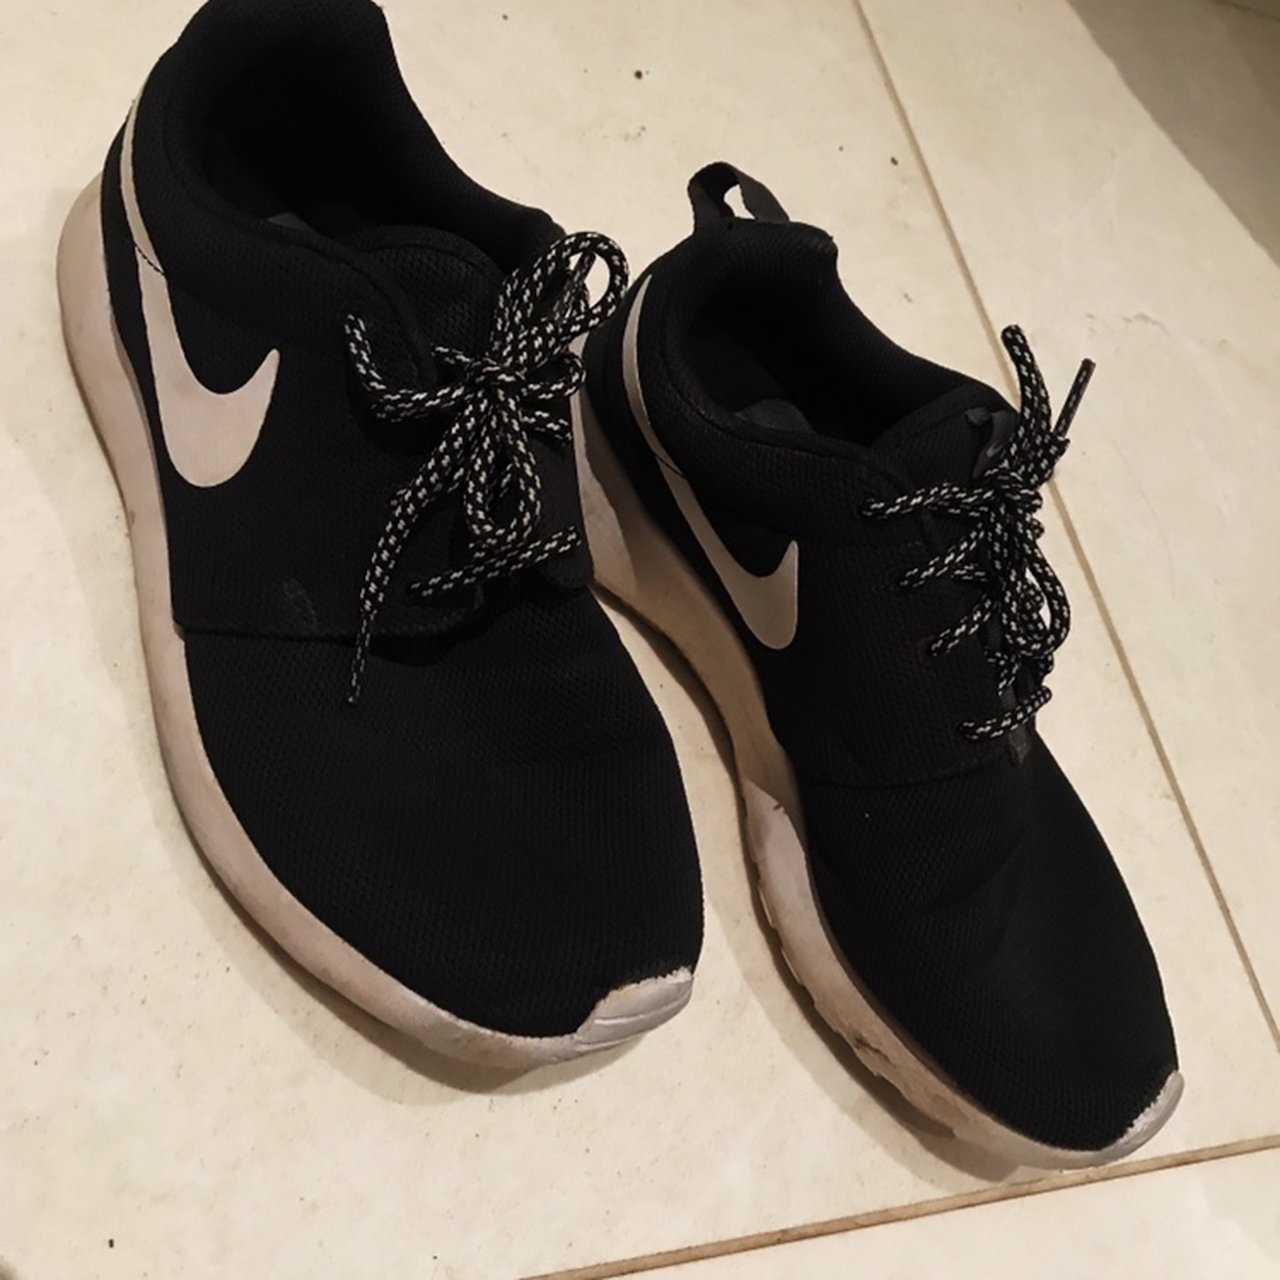 siga adelante Tomar un riesgo Iniciativa  Decathlon Nike Tanjun Womens Fitness Walking Shoes -... - Depop